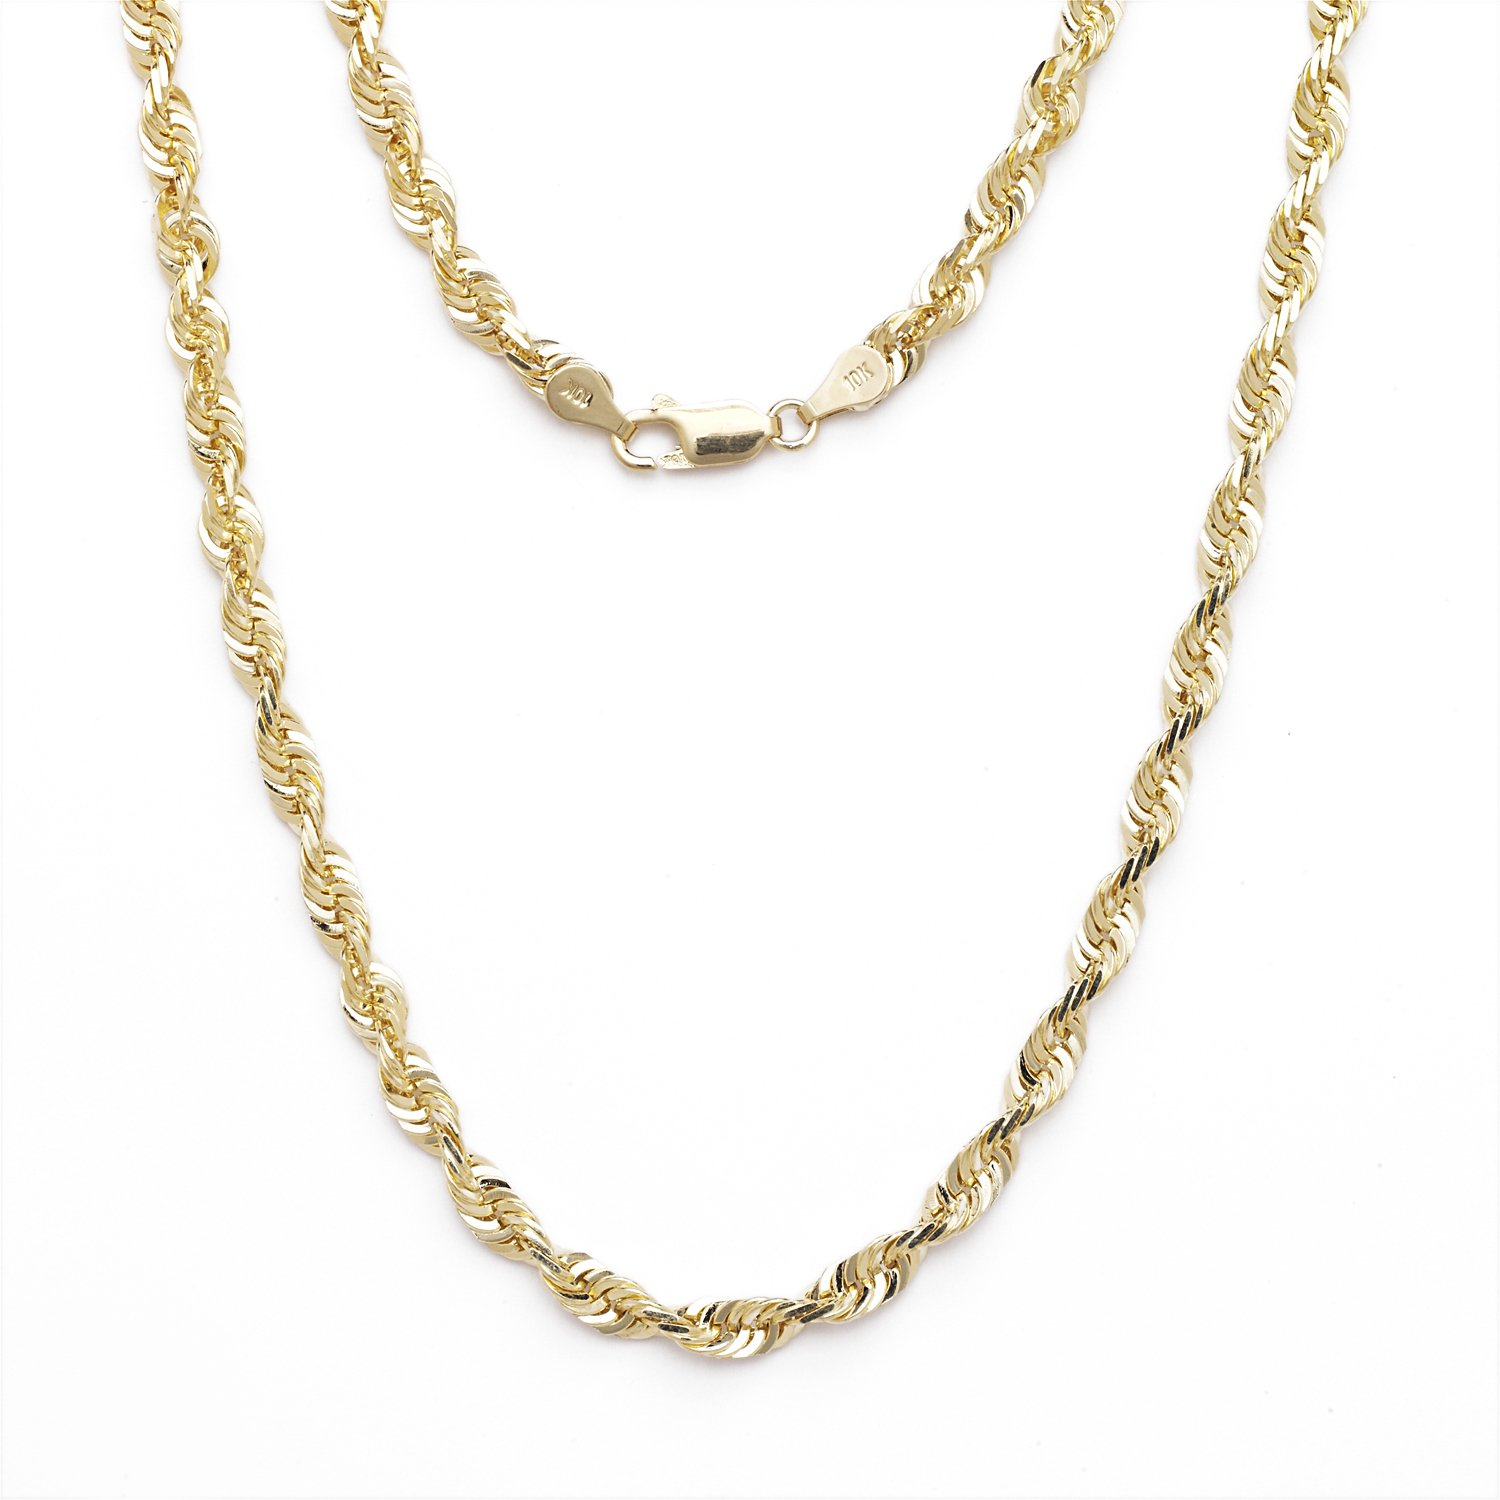 26 Inch 10k Yellow Gold Solid Extra Light Diamond Cut Rope Chain Necklace 4mm